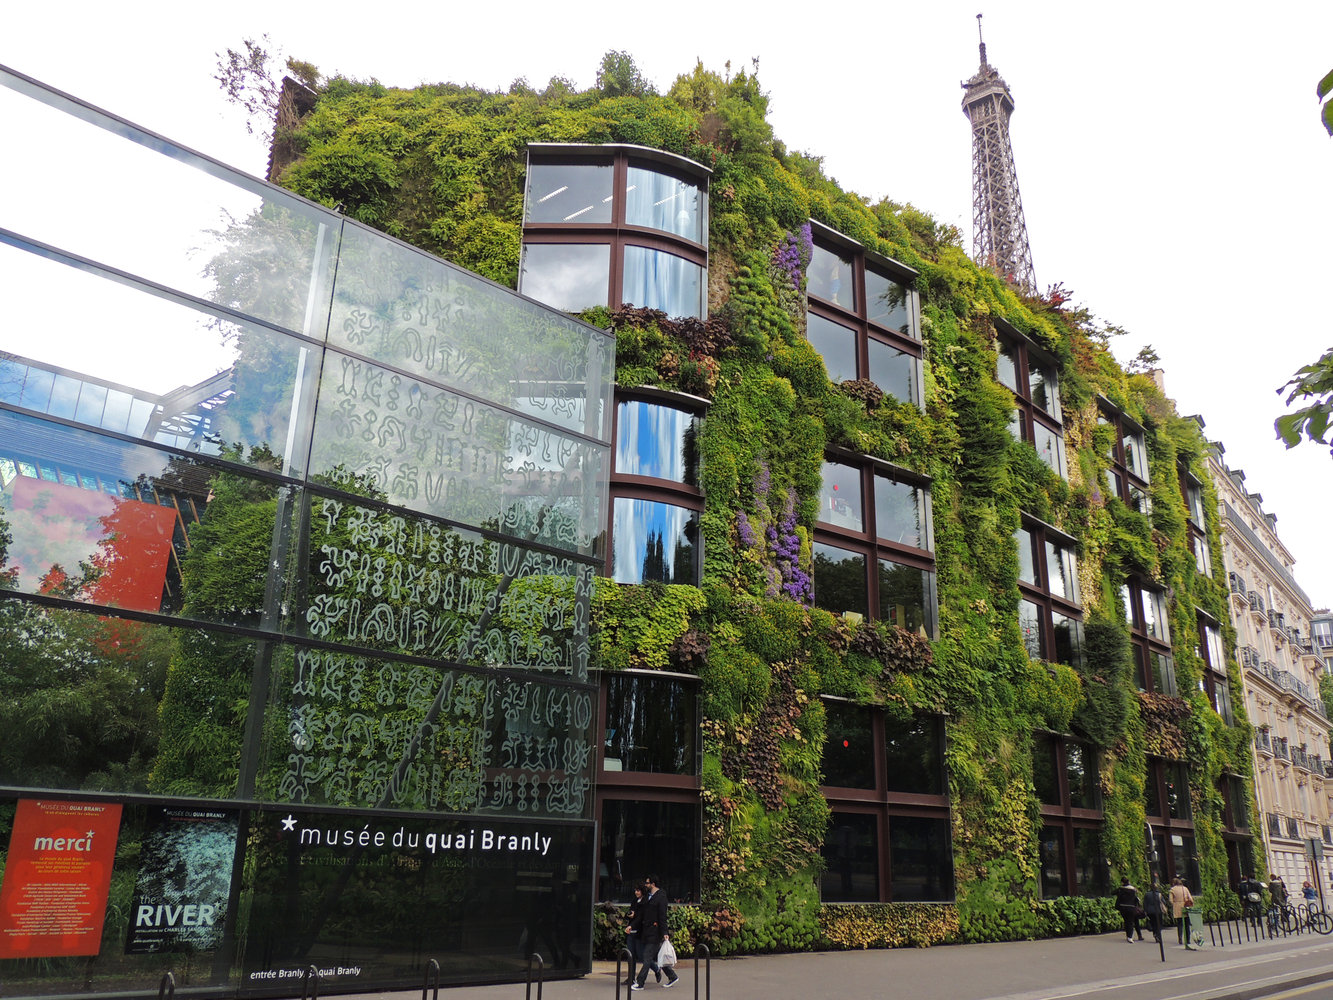 Quai branly museum vertical garden patrick blanc for Jardin quai branly